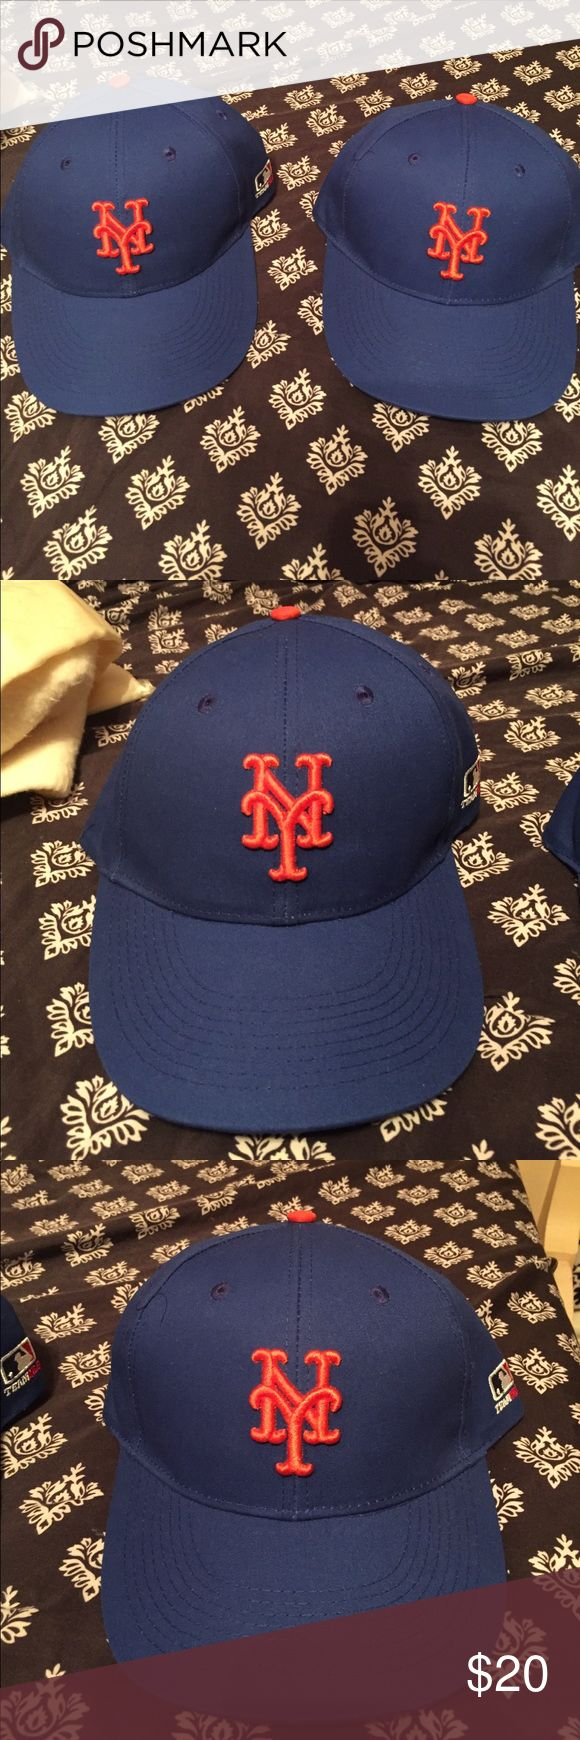 2 New York Mets Hats! 2 NY Mets Hats! Left worn once right never worn! Accessories Hats